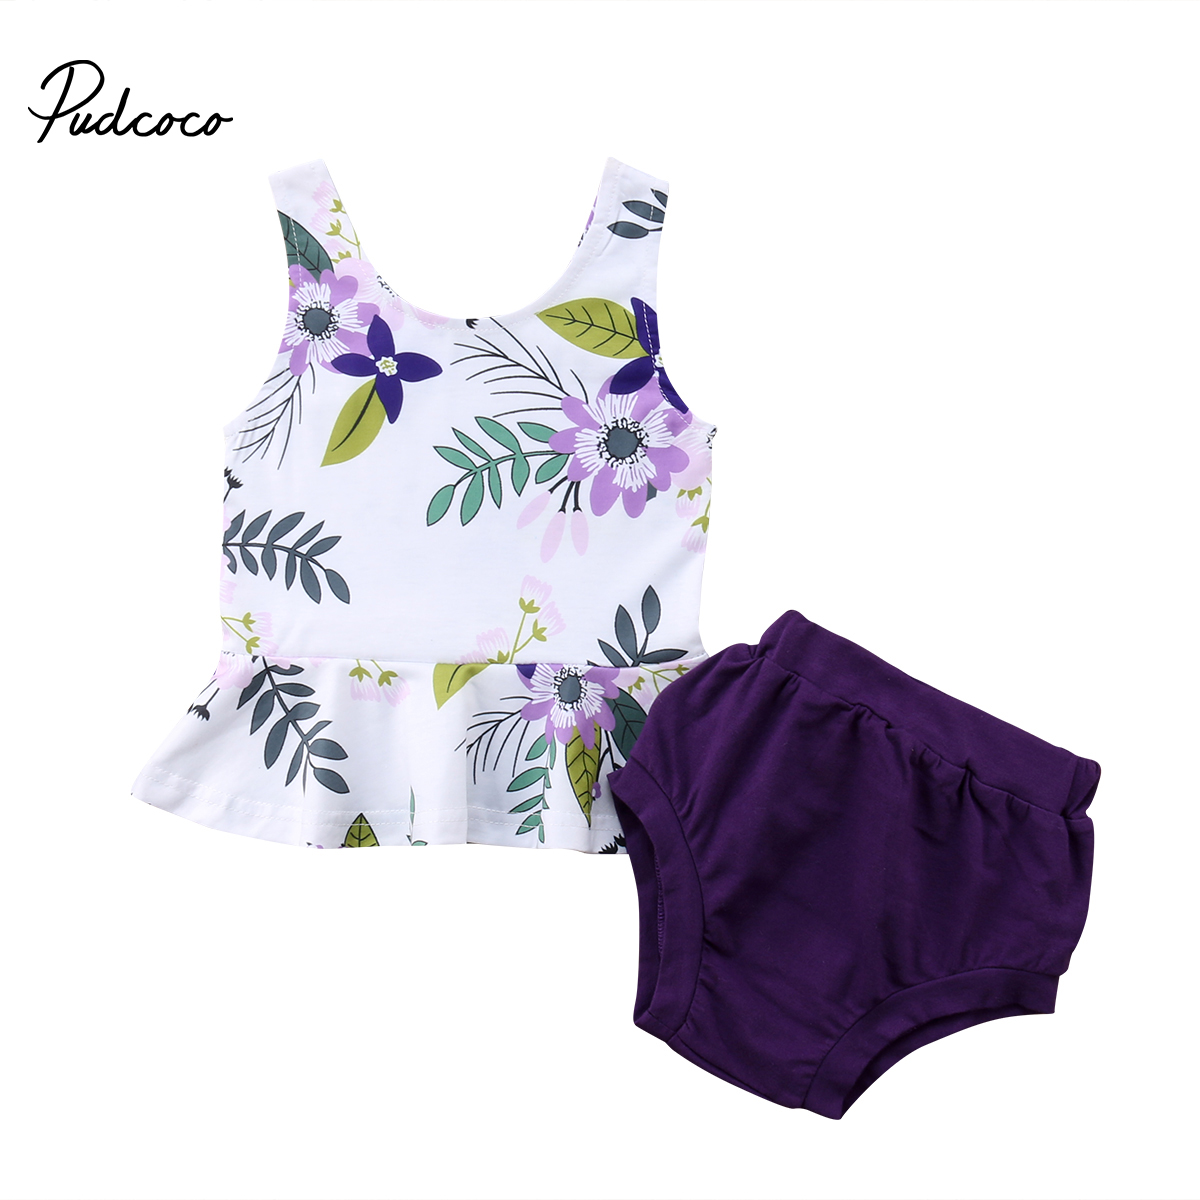 Pudcoco 2018 Newborn Toddler Baby Gir Clothes Sets Floral Print Sleeveless Tops T-shirt + PP Shorts 2Pcs Outfits Sunsuit